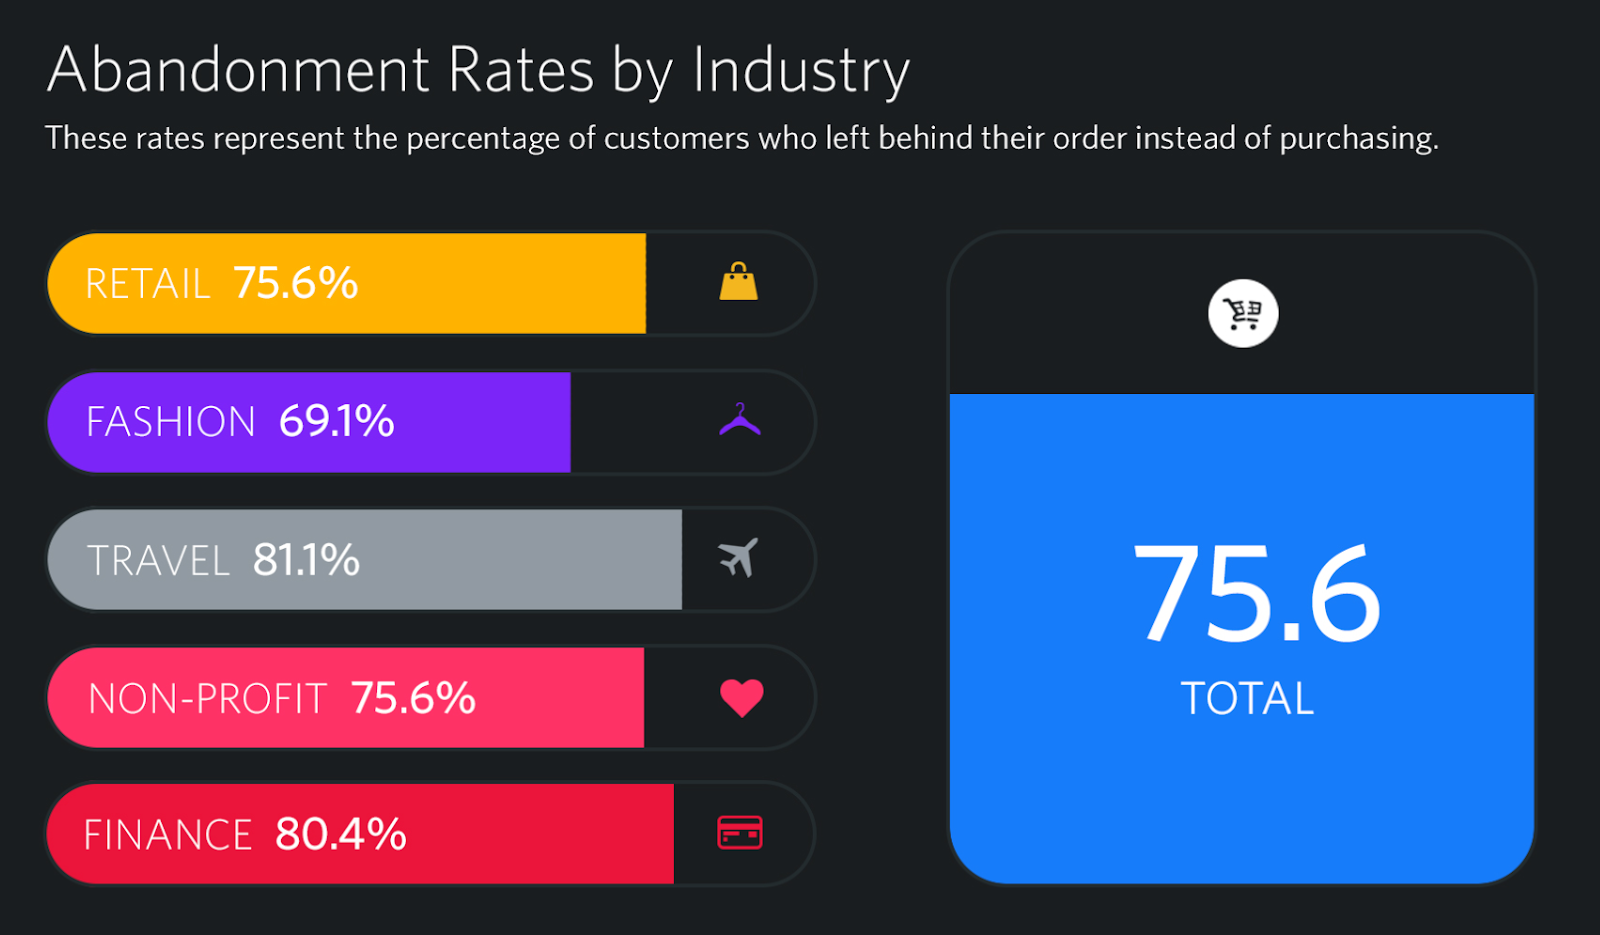 Abandonment rates by industry